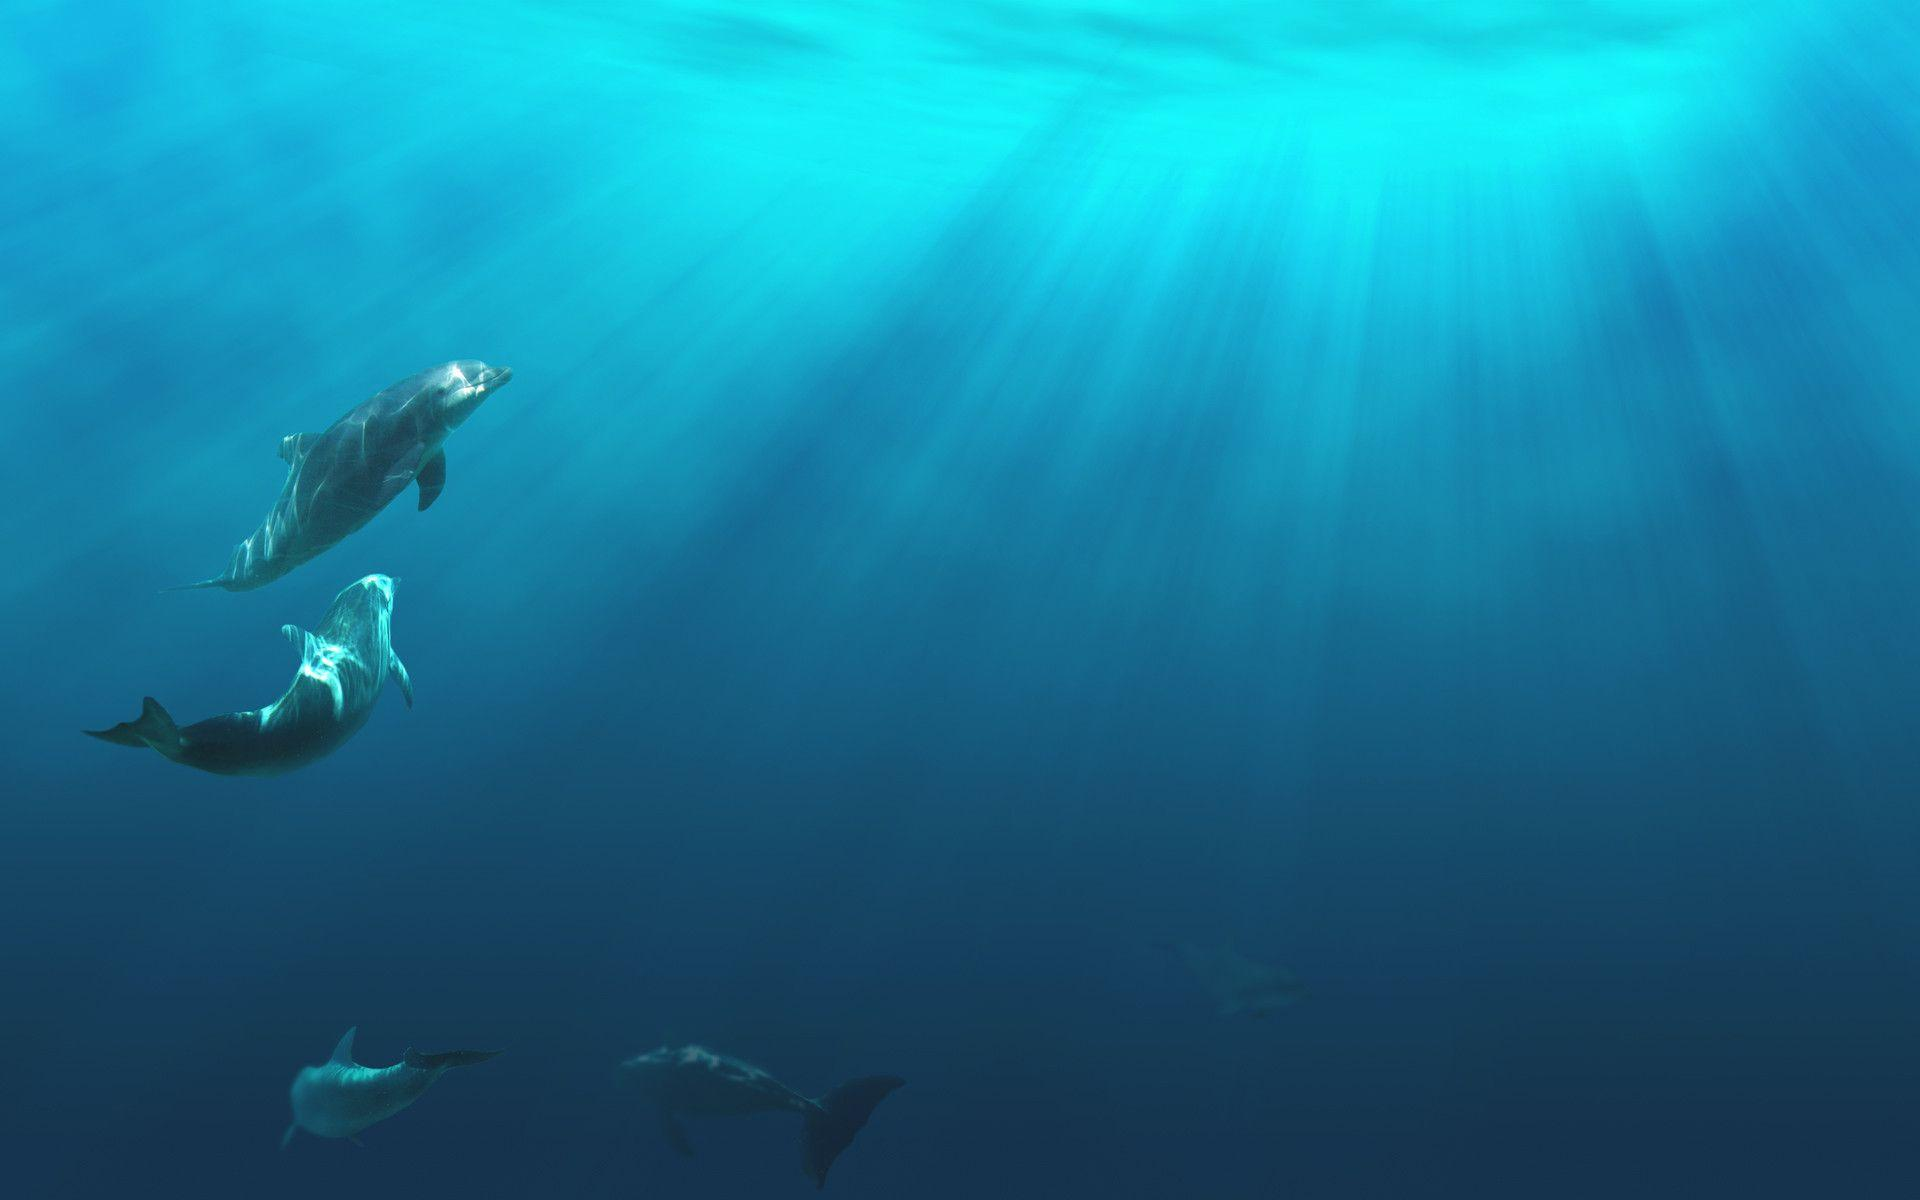 ocean wallpaper underwater water wallpapers wallpaper cave 156